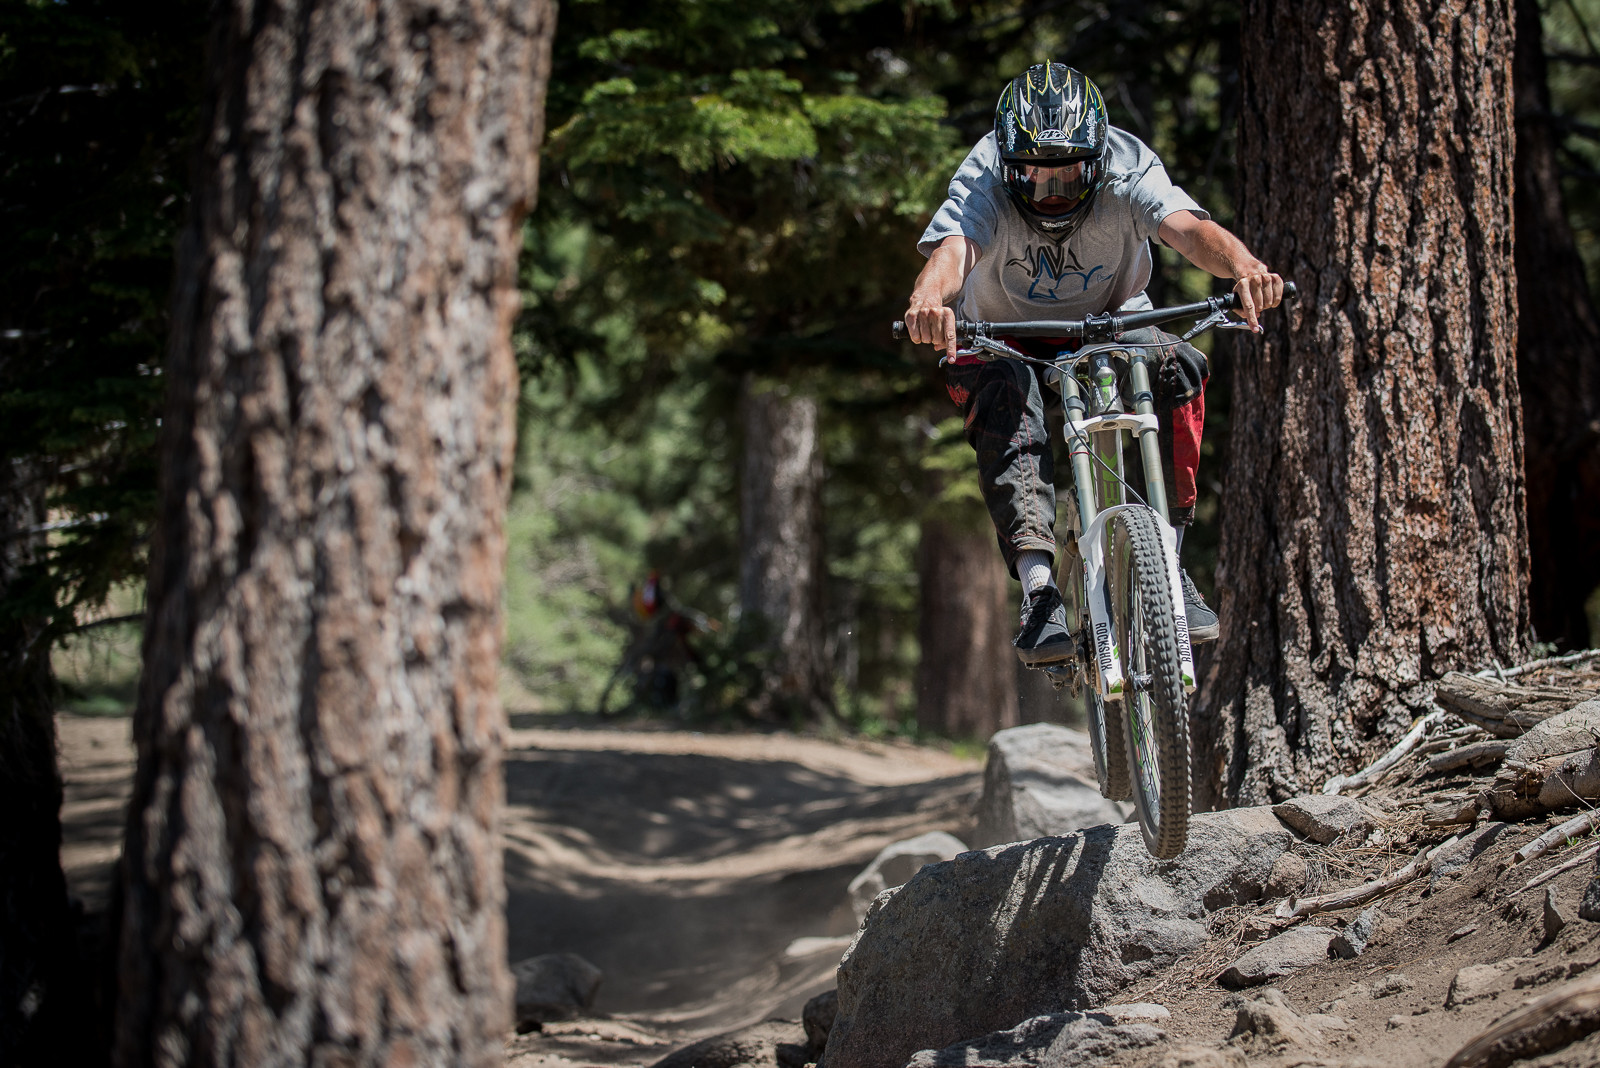 Racer Steeze - Vital Ditch Day 2016 at Snow Summit Bike Park - Mountain Biking Pictures - Vital MTB